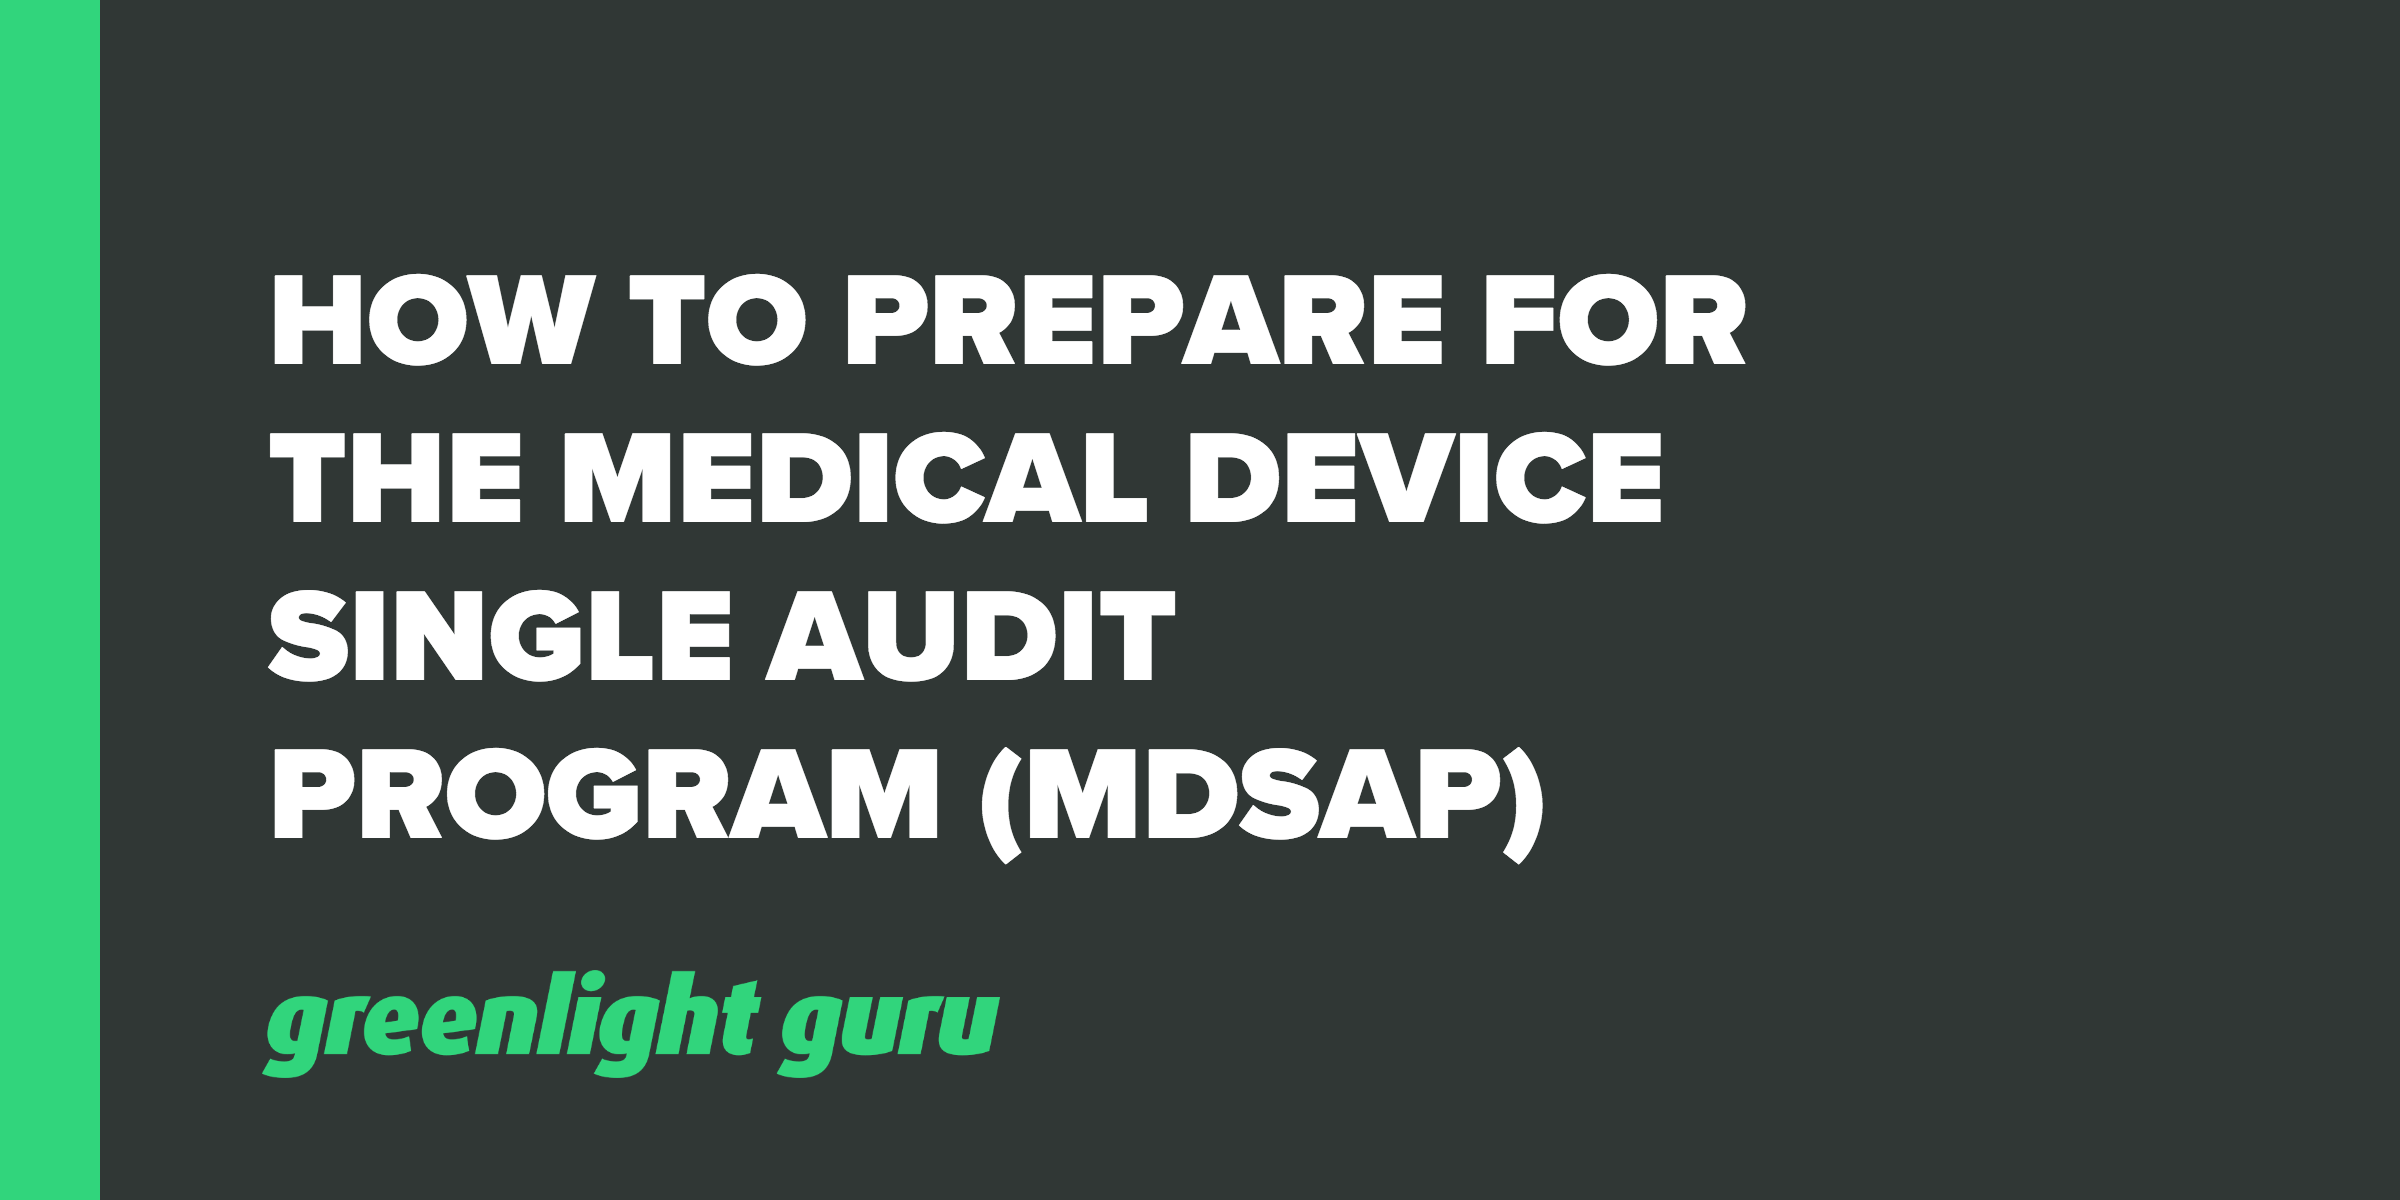 How to Prepare for the Medical Device Single Audit Program (MDSAP)